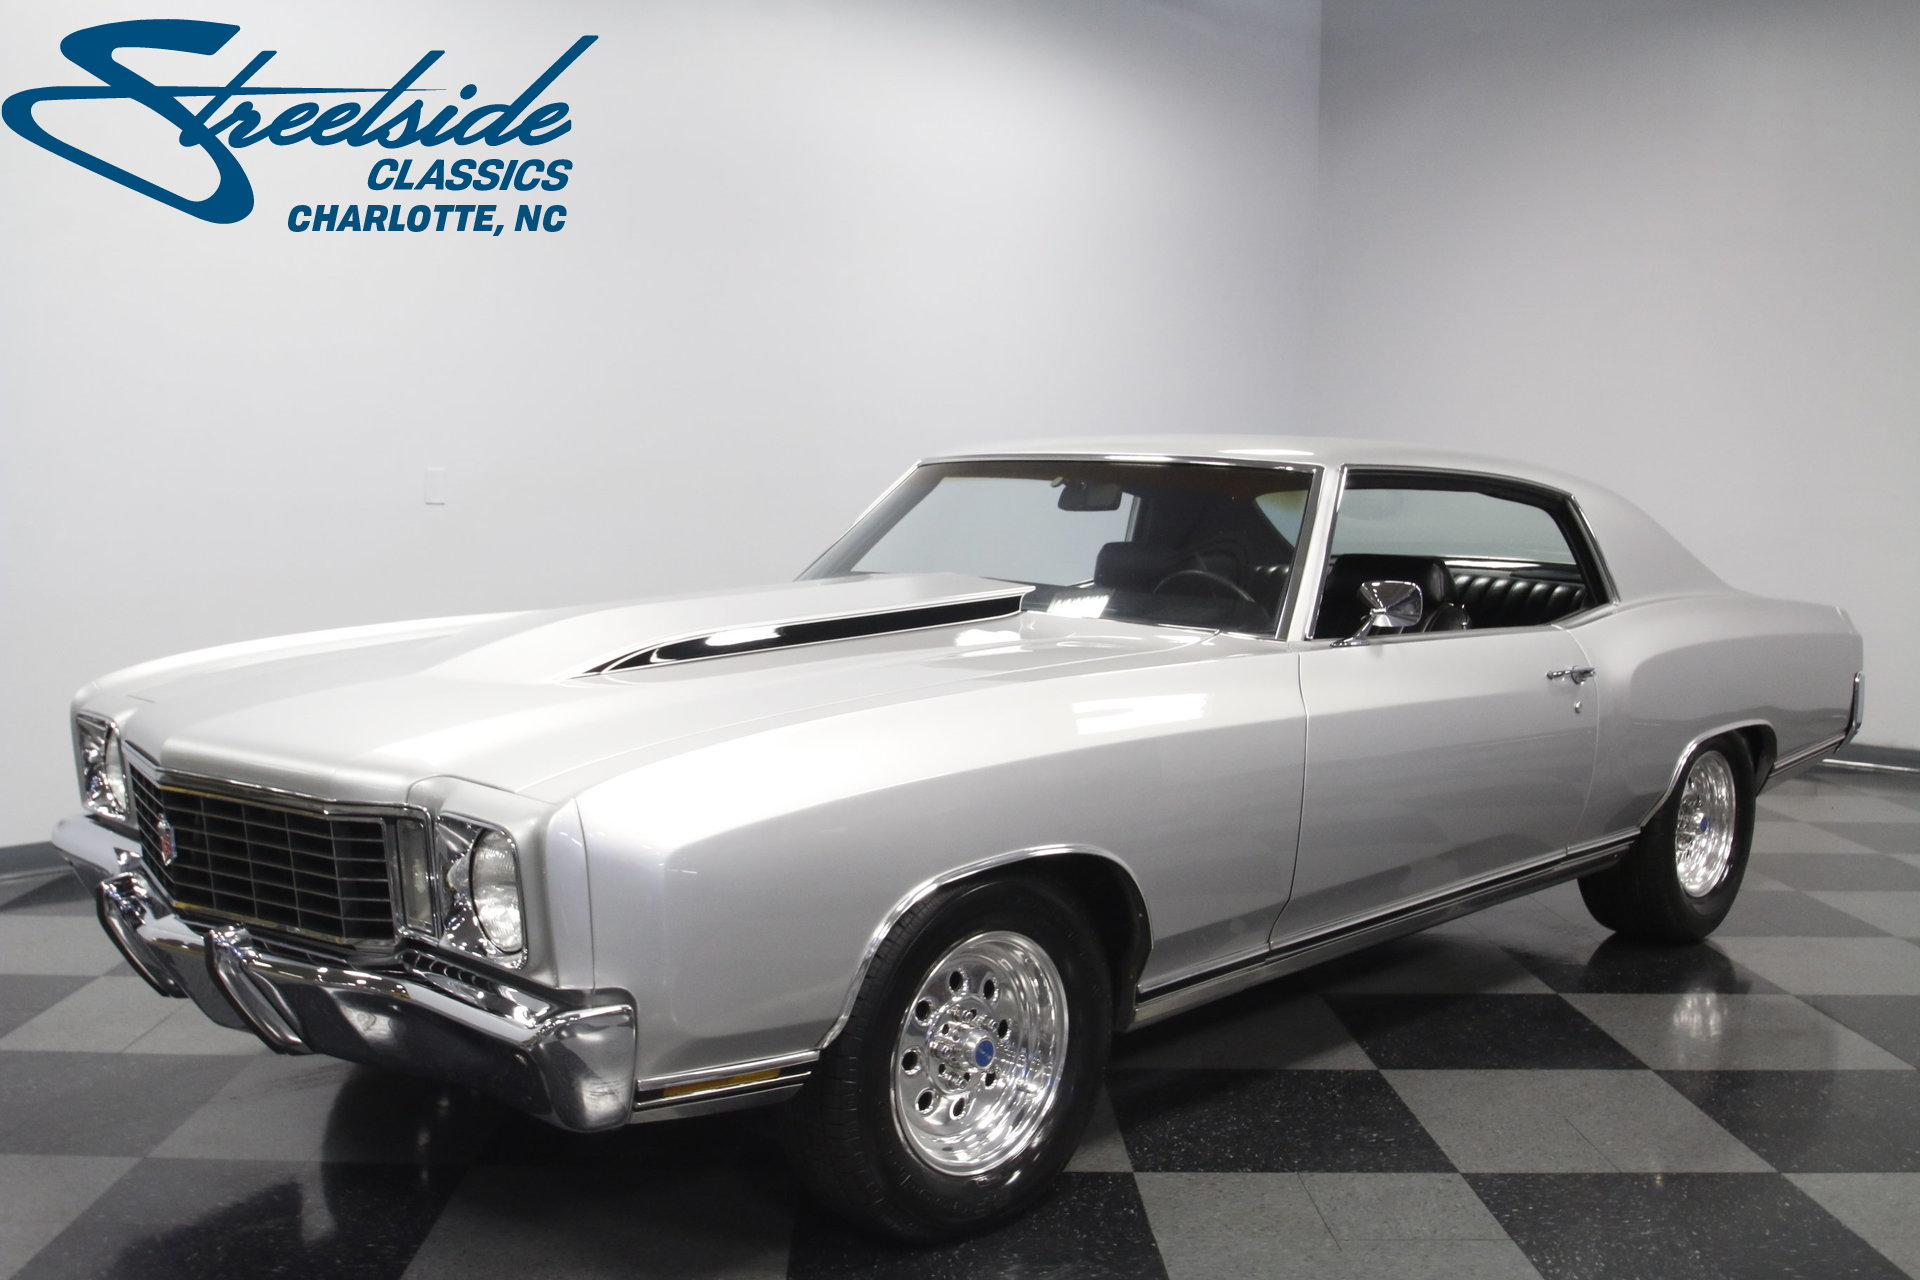 8311055110613c_hd_1972-chevrolet-monte-carlo Take A Look About 1980 Monte Carlo for Sale with Mesmerizing Photos Cars Review